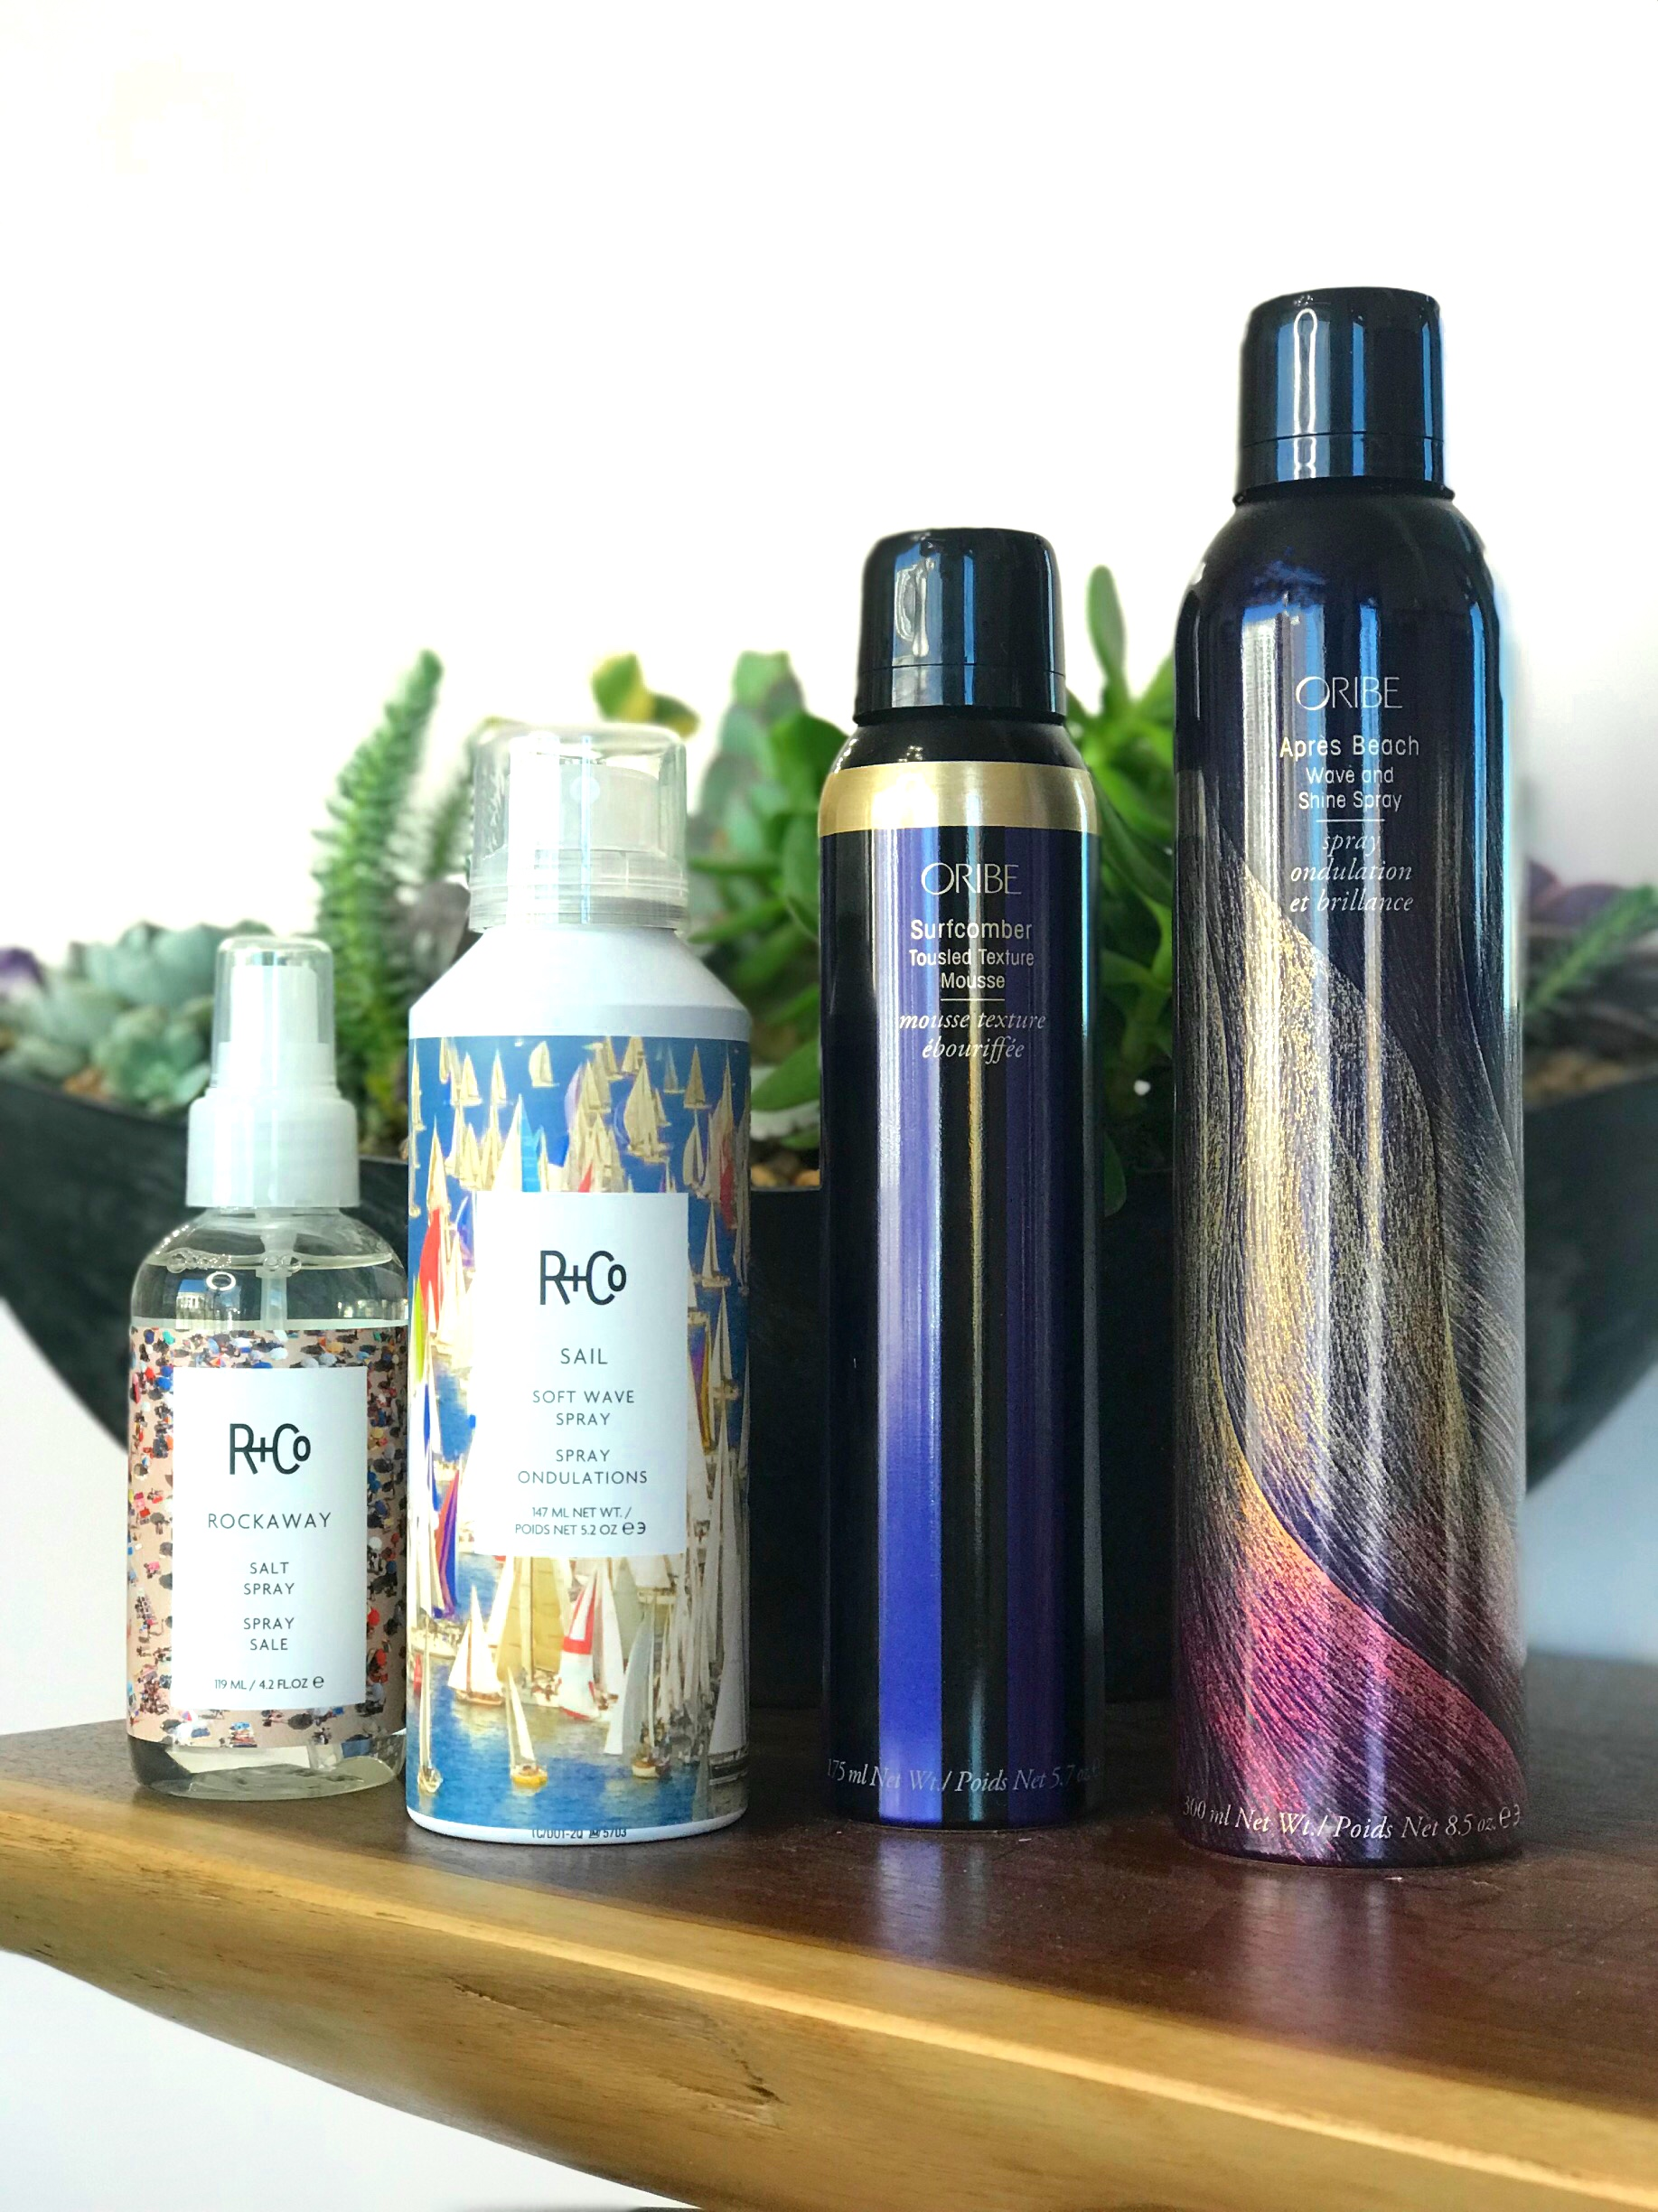 Beach waves products